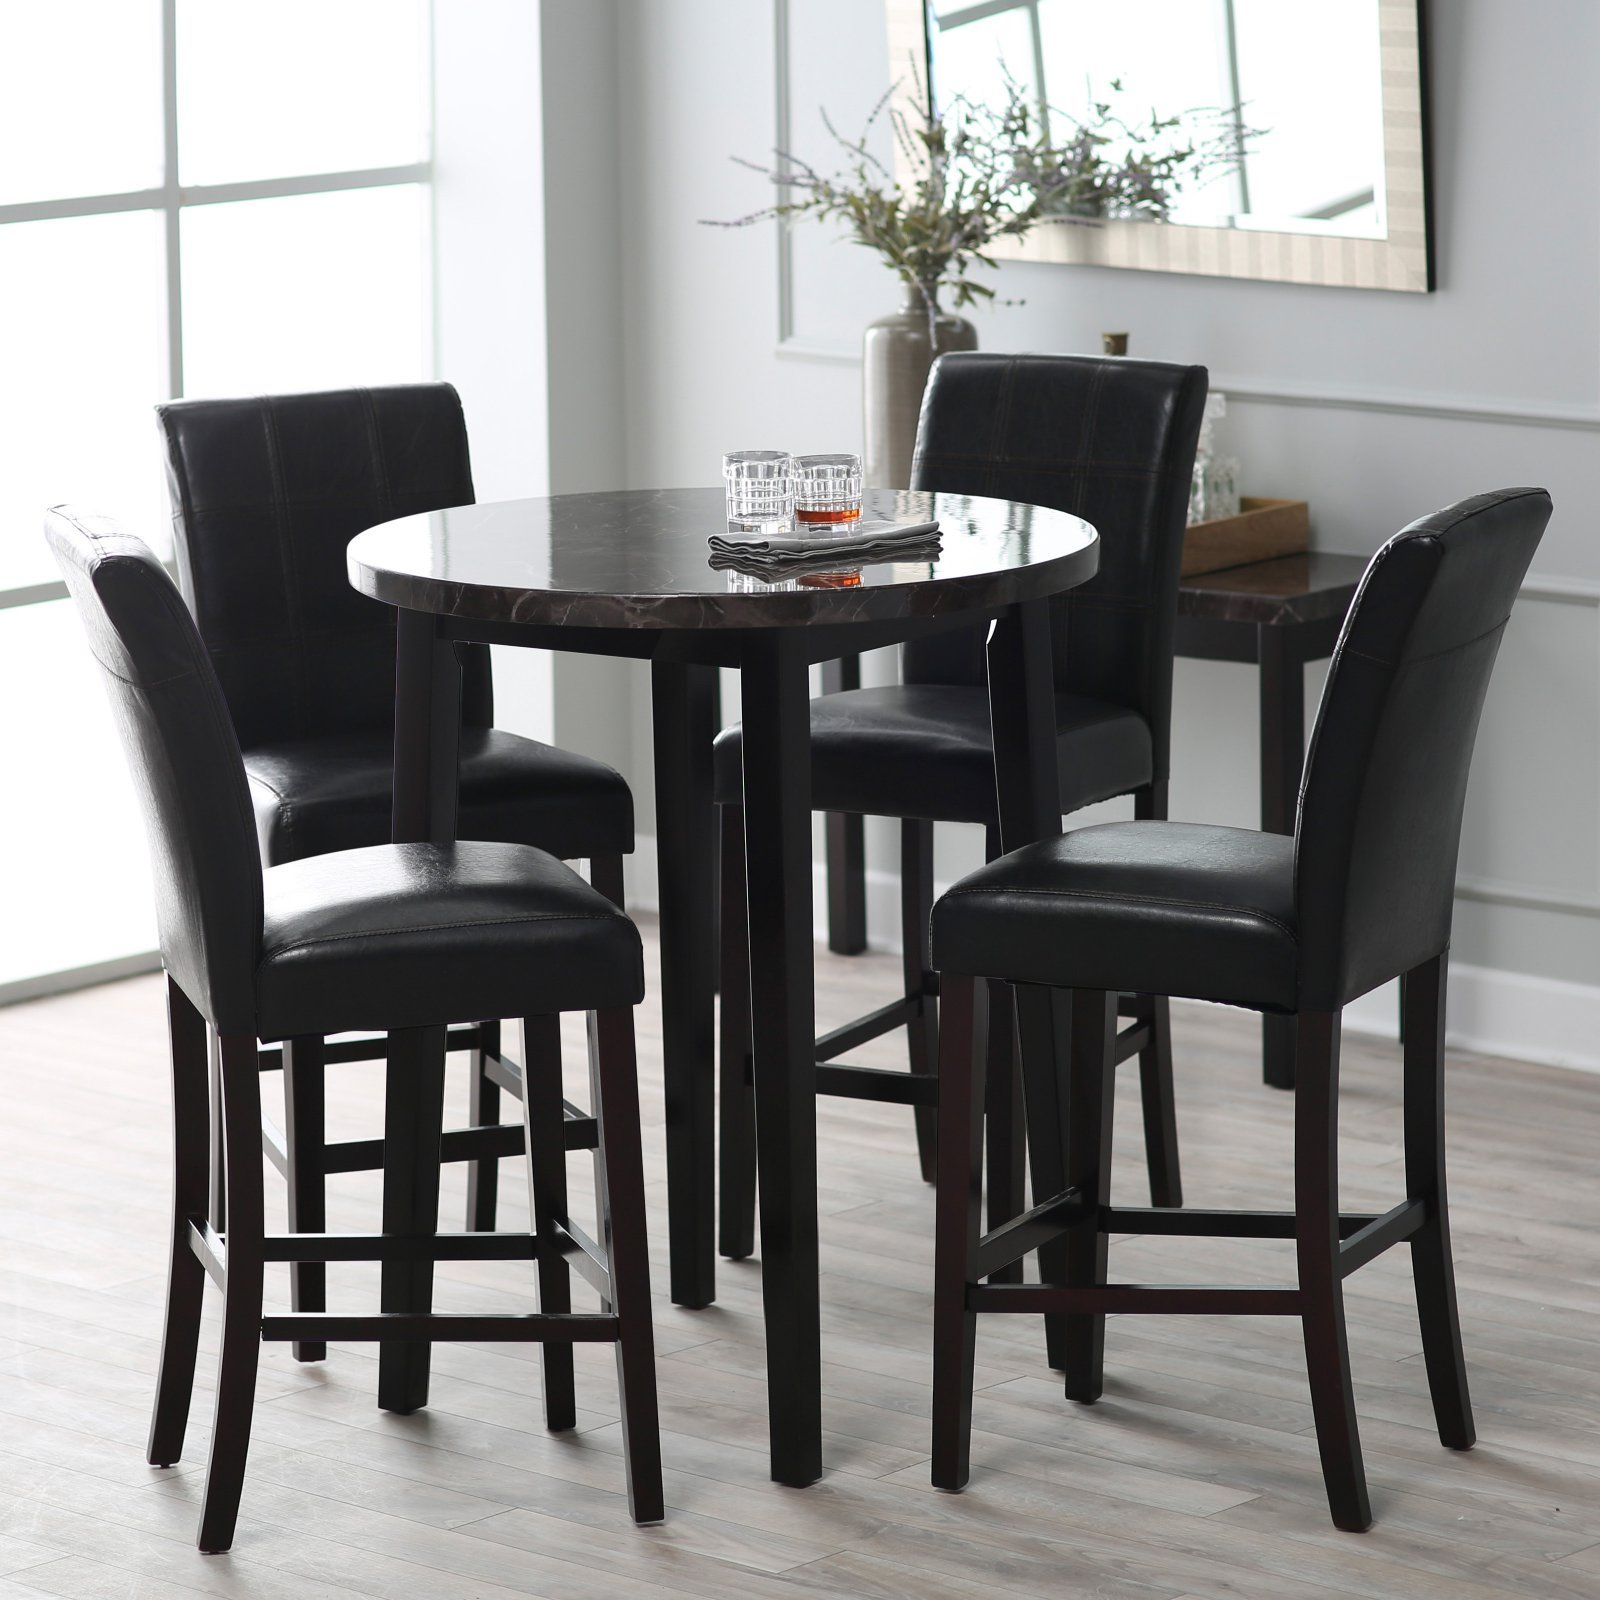 Home | Pub table sets, Pub kitchen table, Counter height pub ...